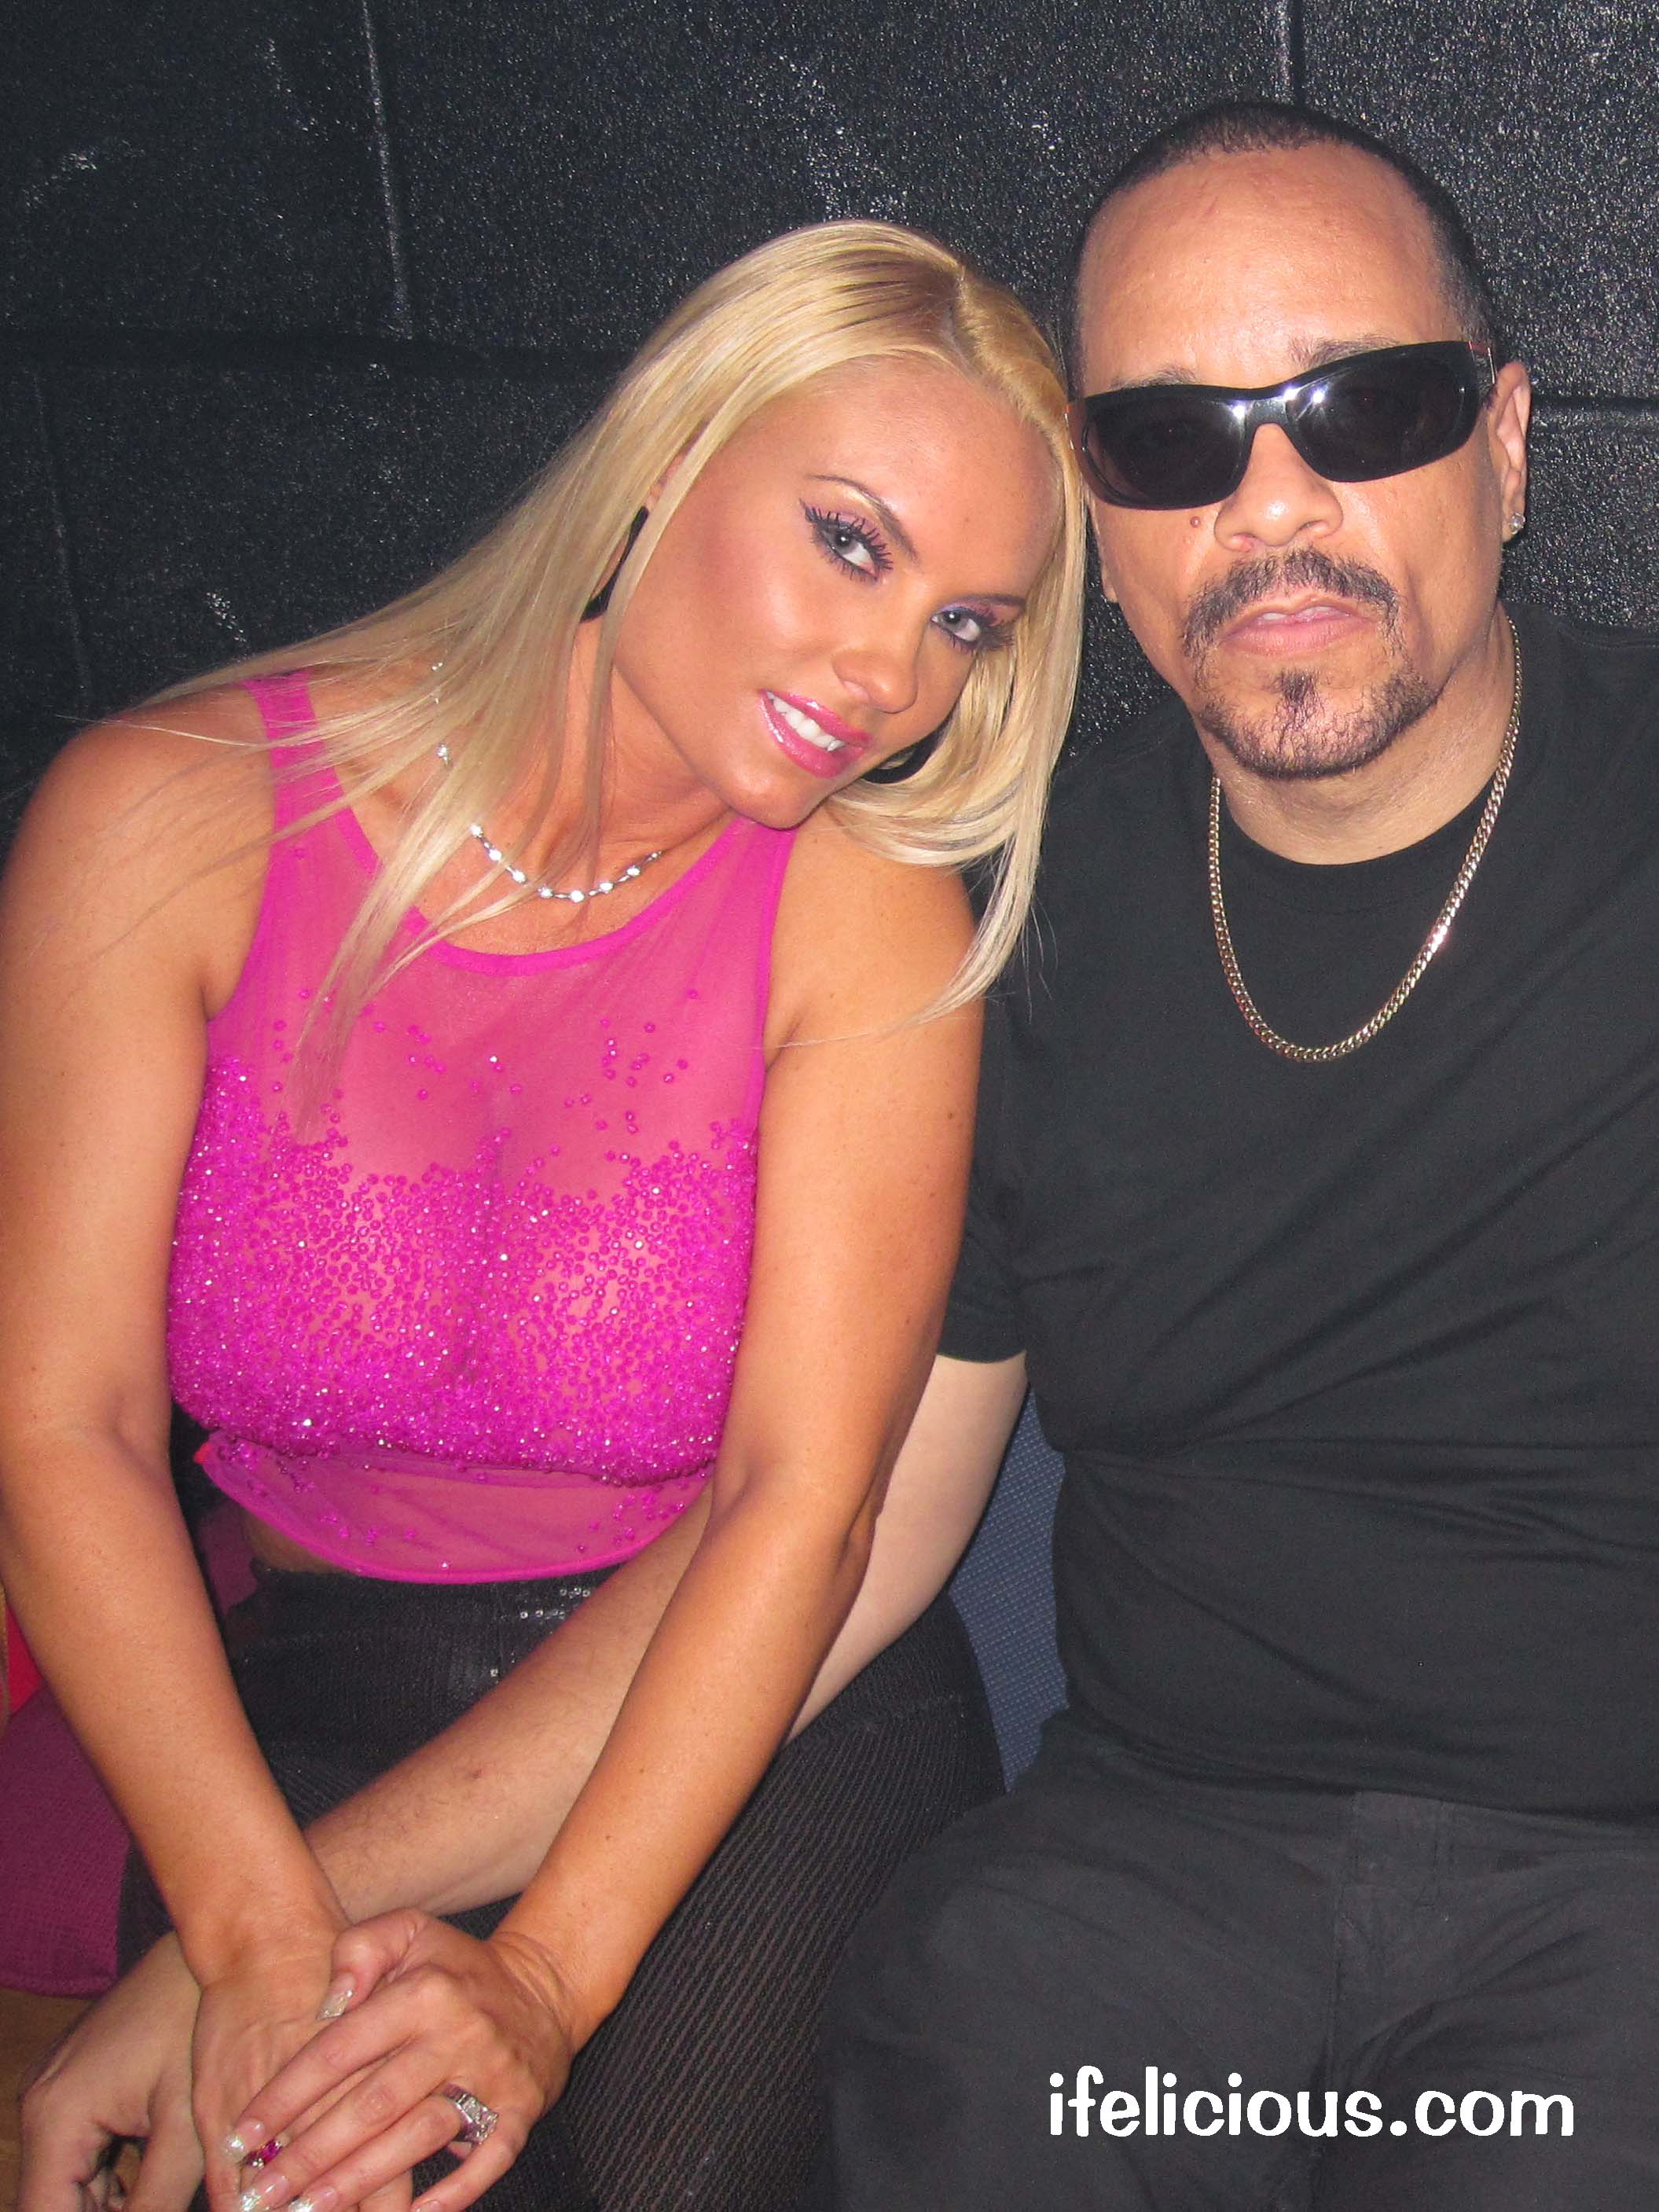 Are you ready for some Coco with your Ice T? The couple lands reality show on E!